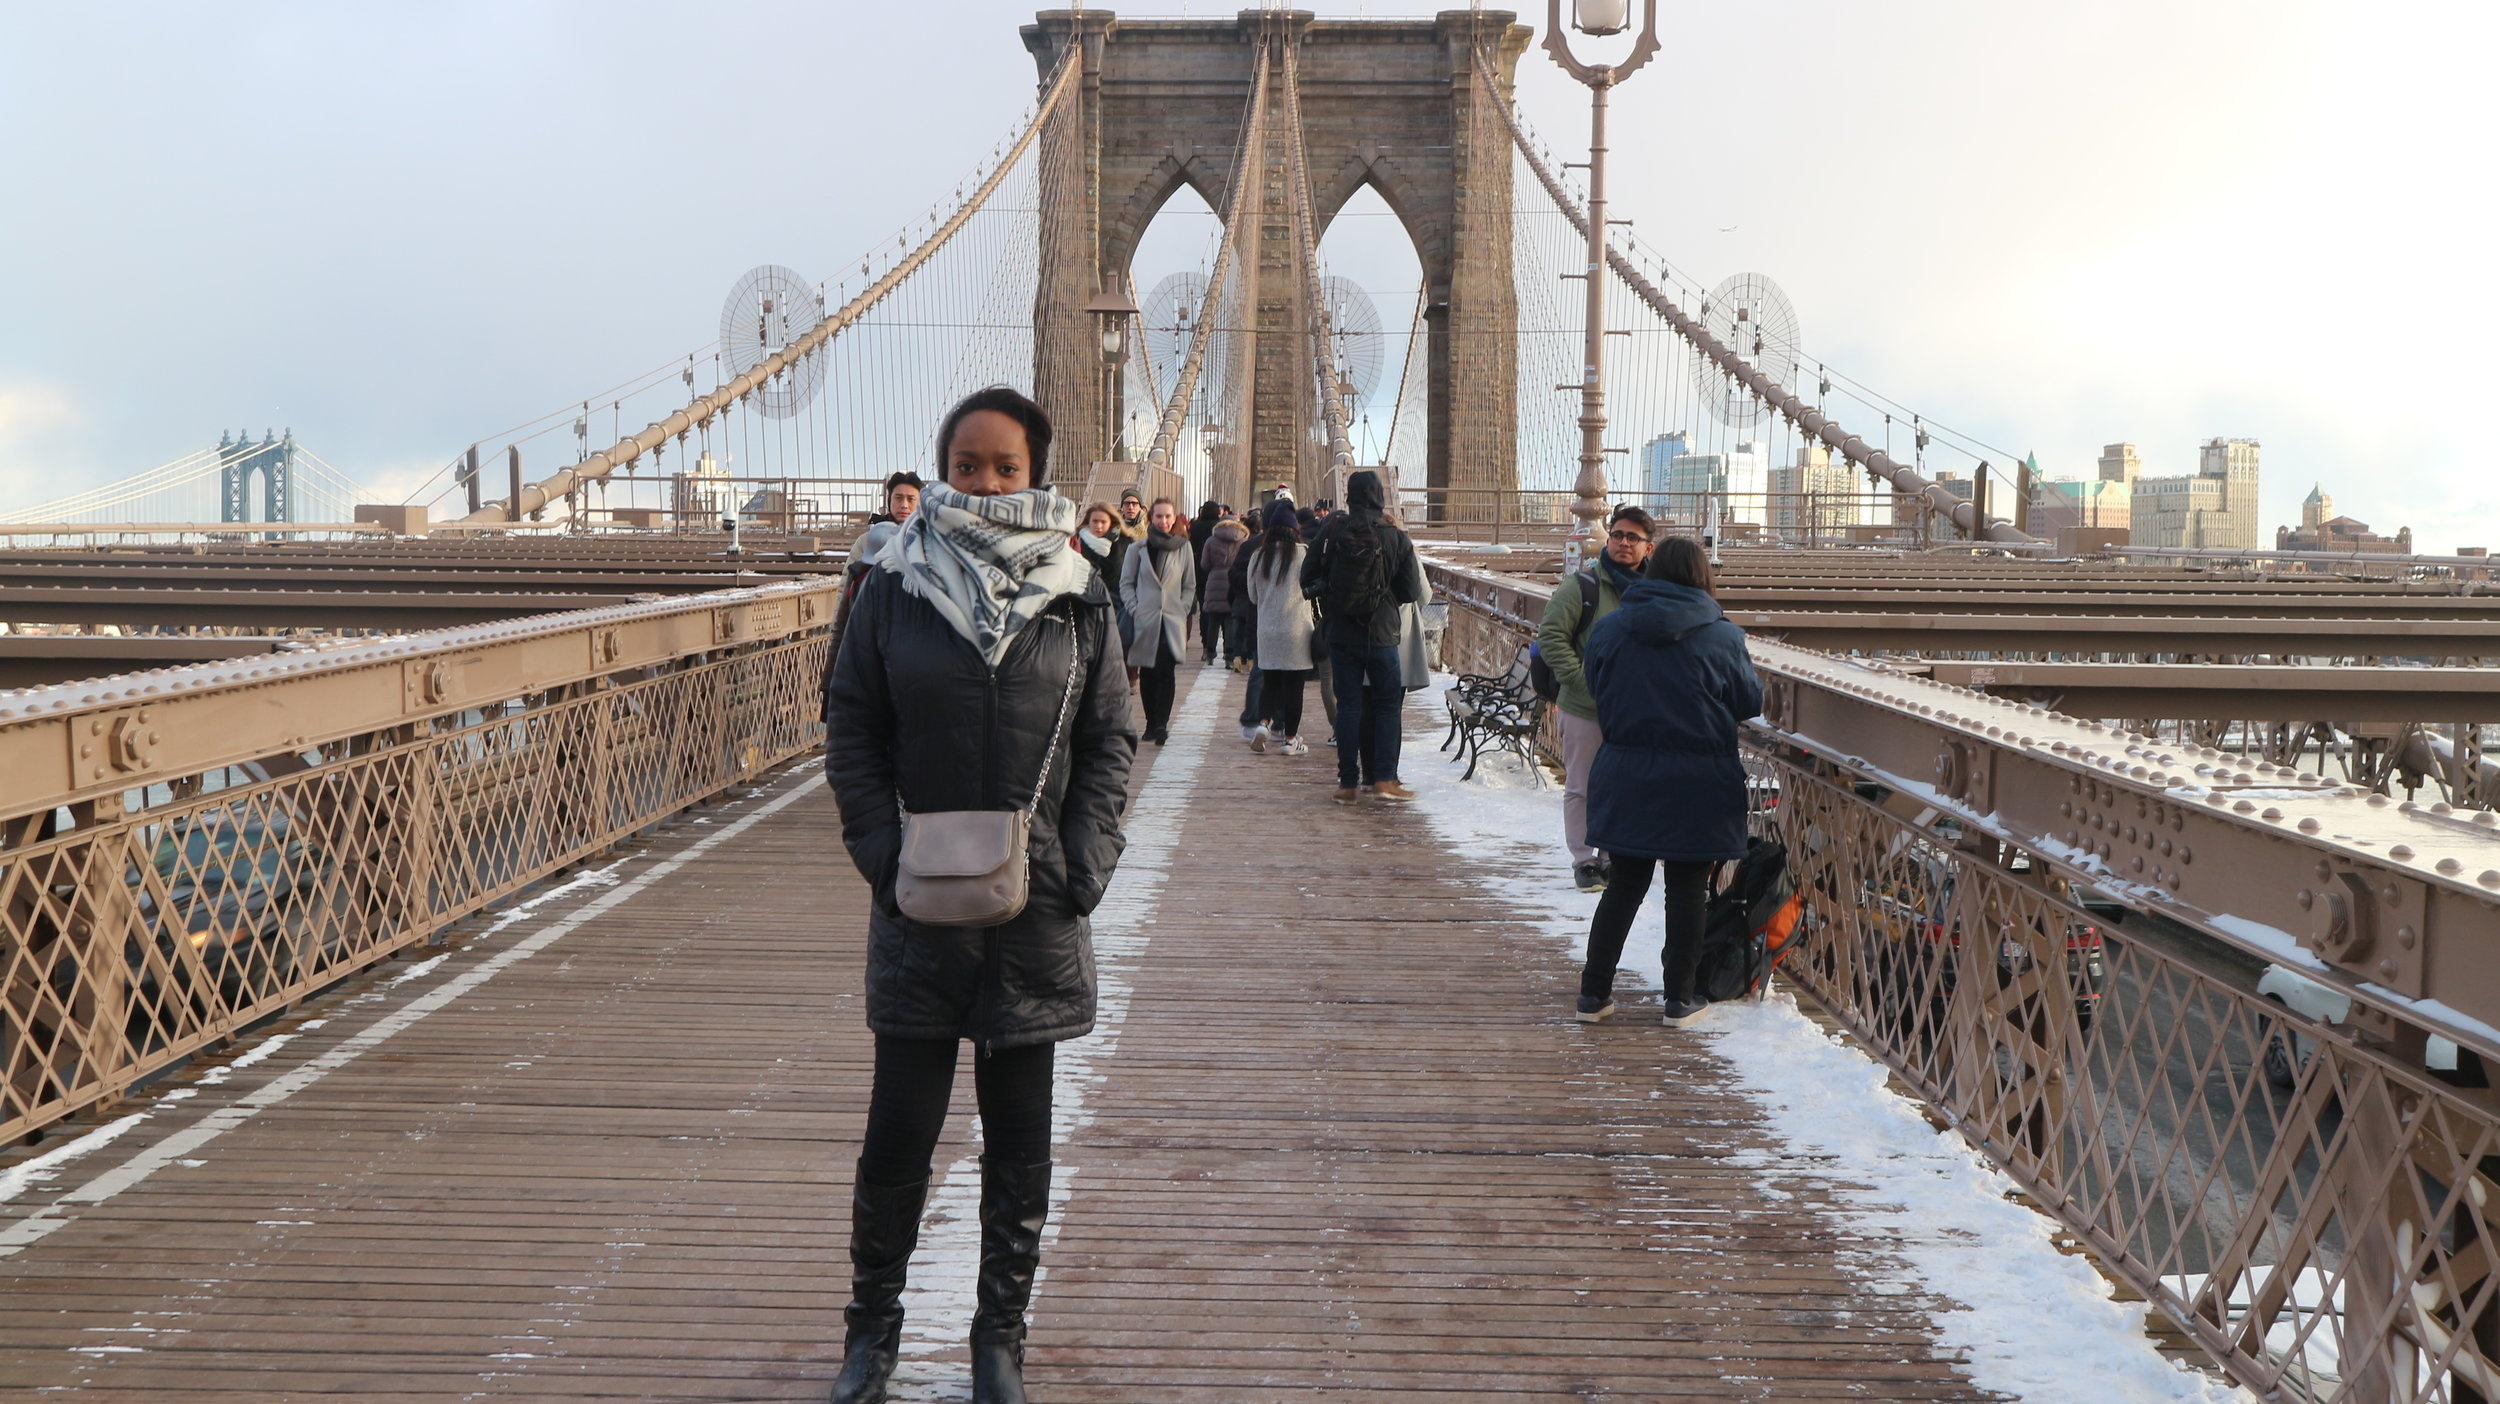 Freezing on the Brooklyn Bridge